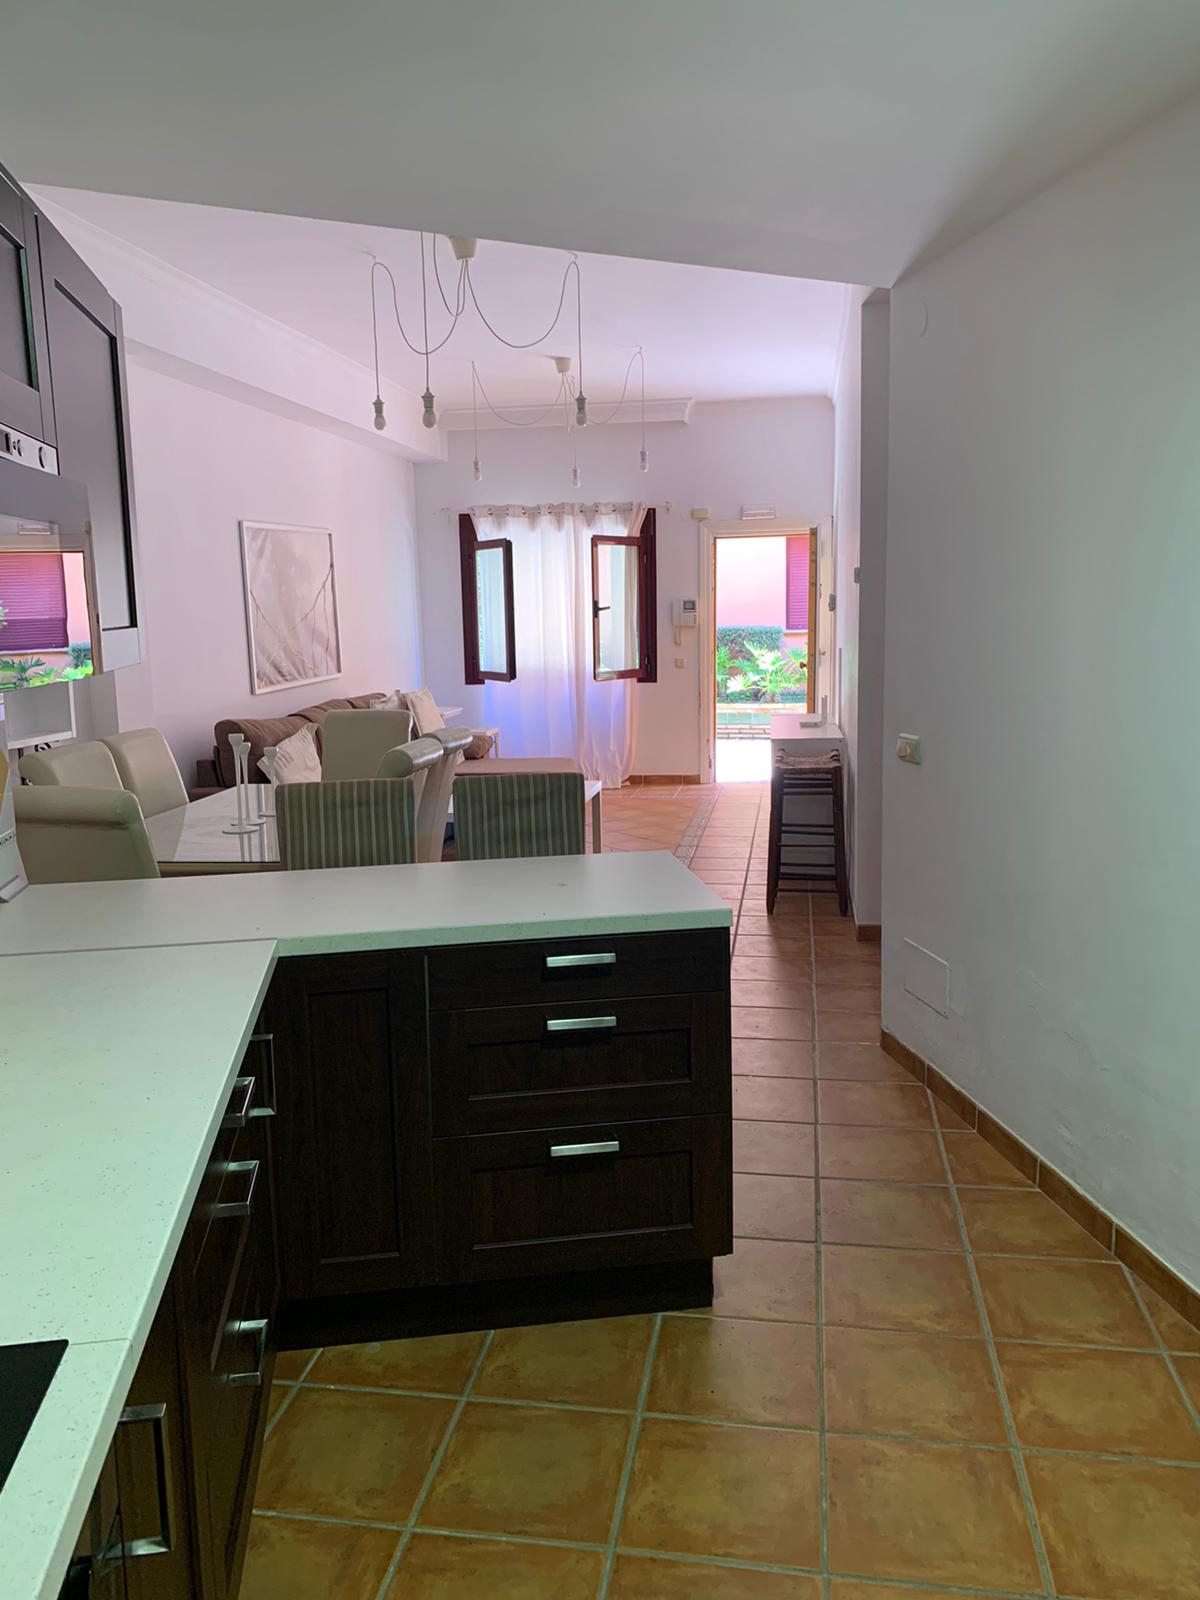 1 bedroom apartment for rent in El Paraiso - mibgroup.es